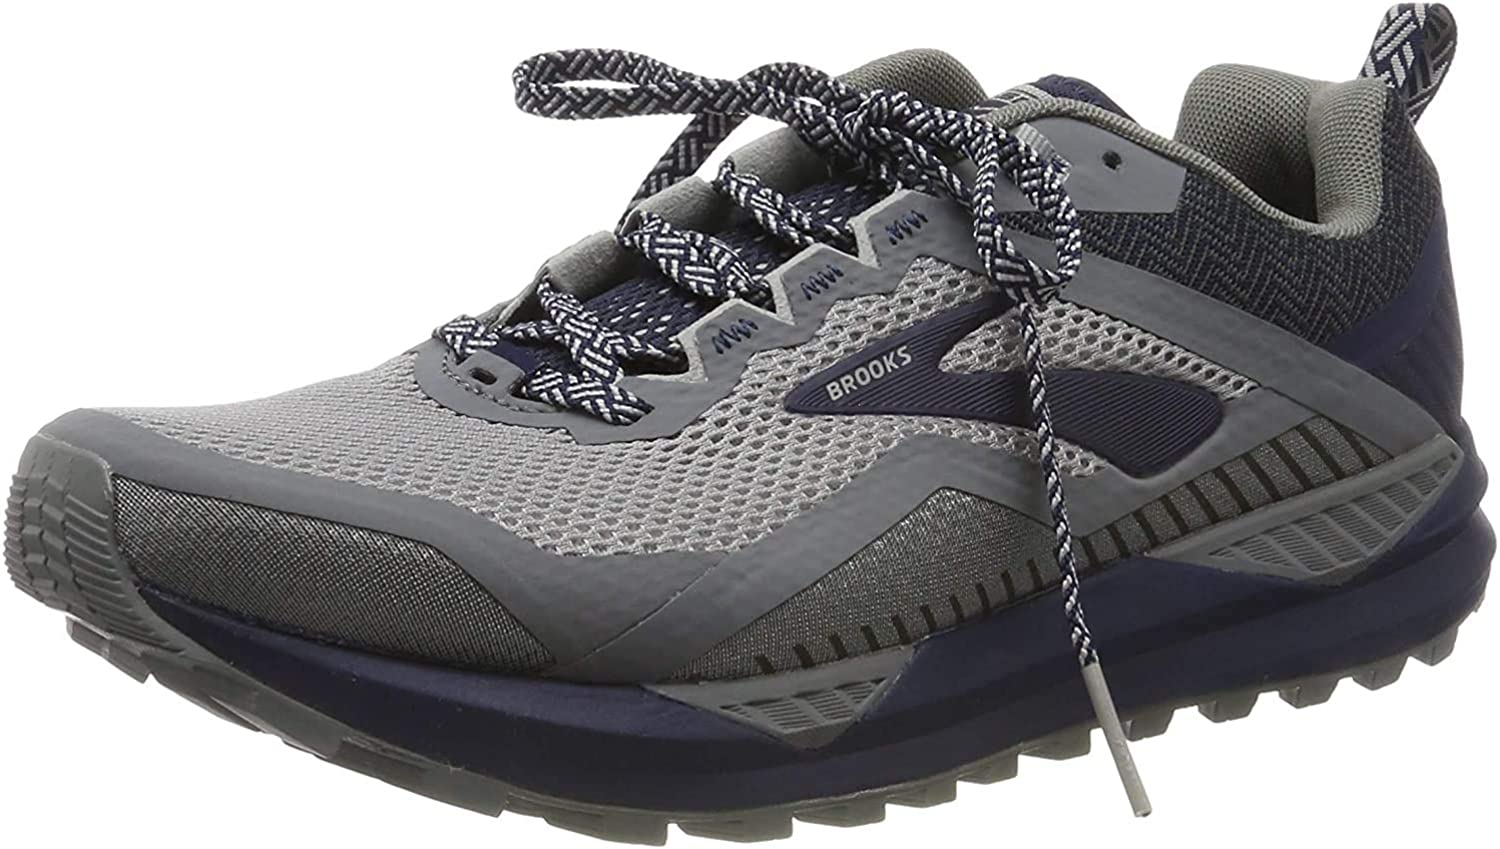 Brooks 1103101D, Zapatillas De Running para Hombre, Gris Grey Navy 020, 44 EU: Amazon.es: Zapatos y complementos